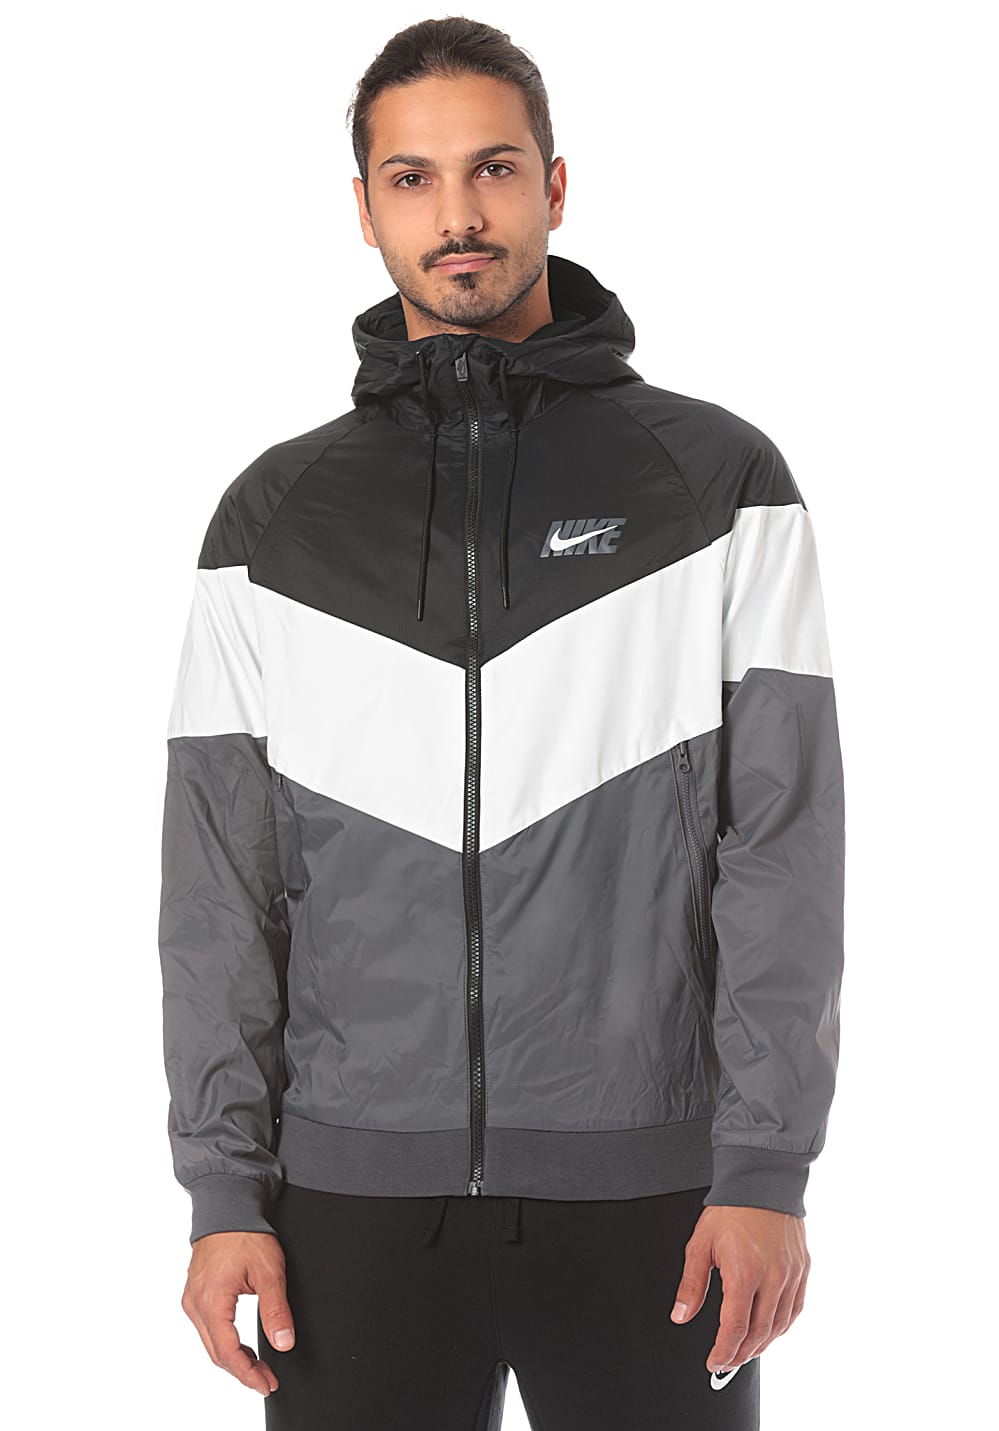 closer at sells exclusive shoes NIKE SPORTSWEAR Windrunner Hd Gx Qs - Jacke für Herren - Schwarz